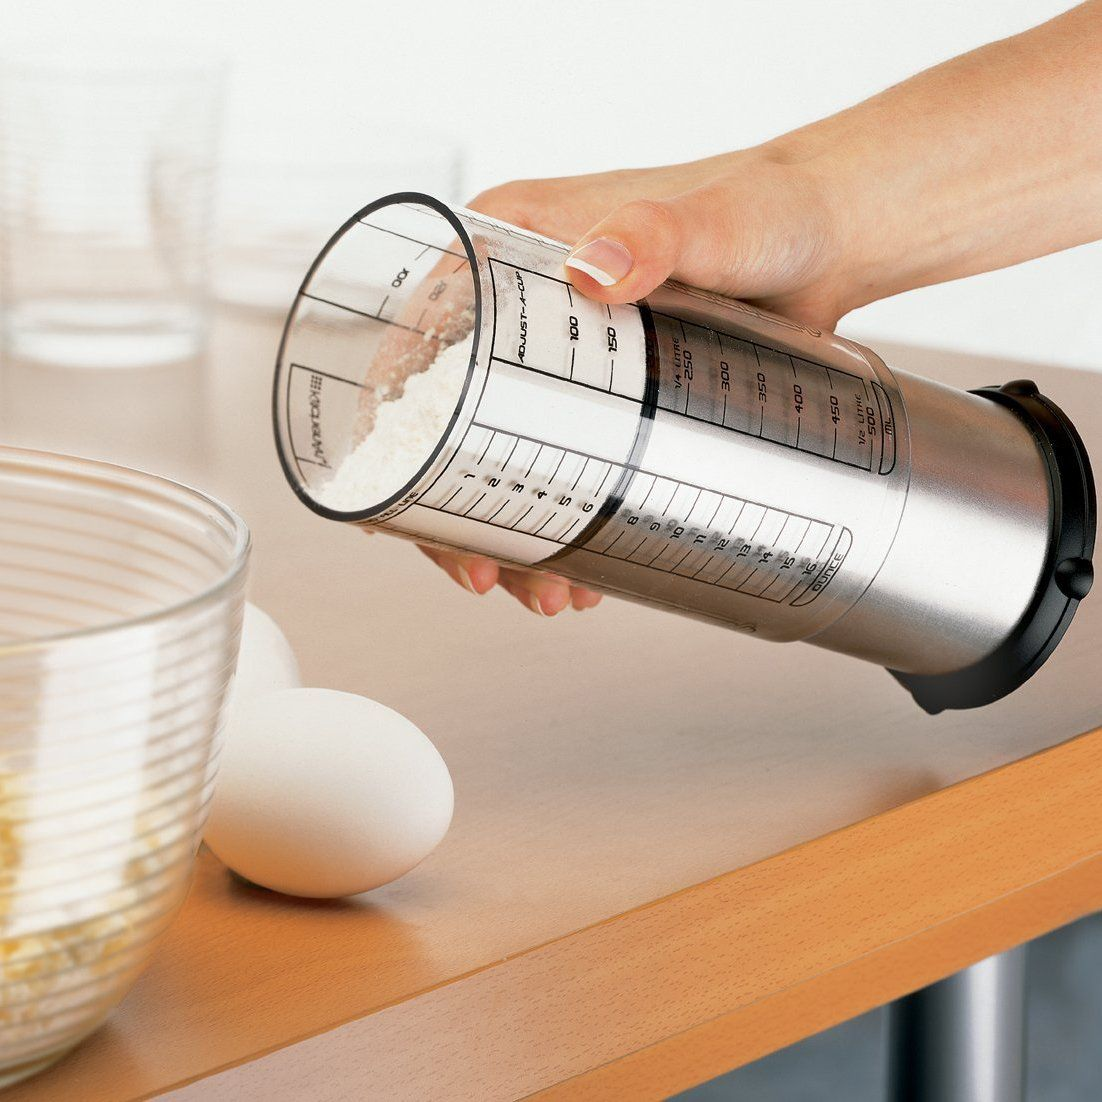 Adjustable Measuring Cup Holds Up To 2 Cups Of Dry Or